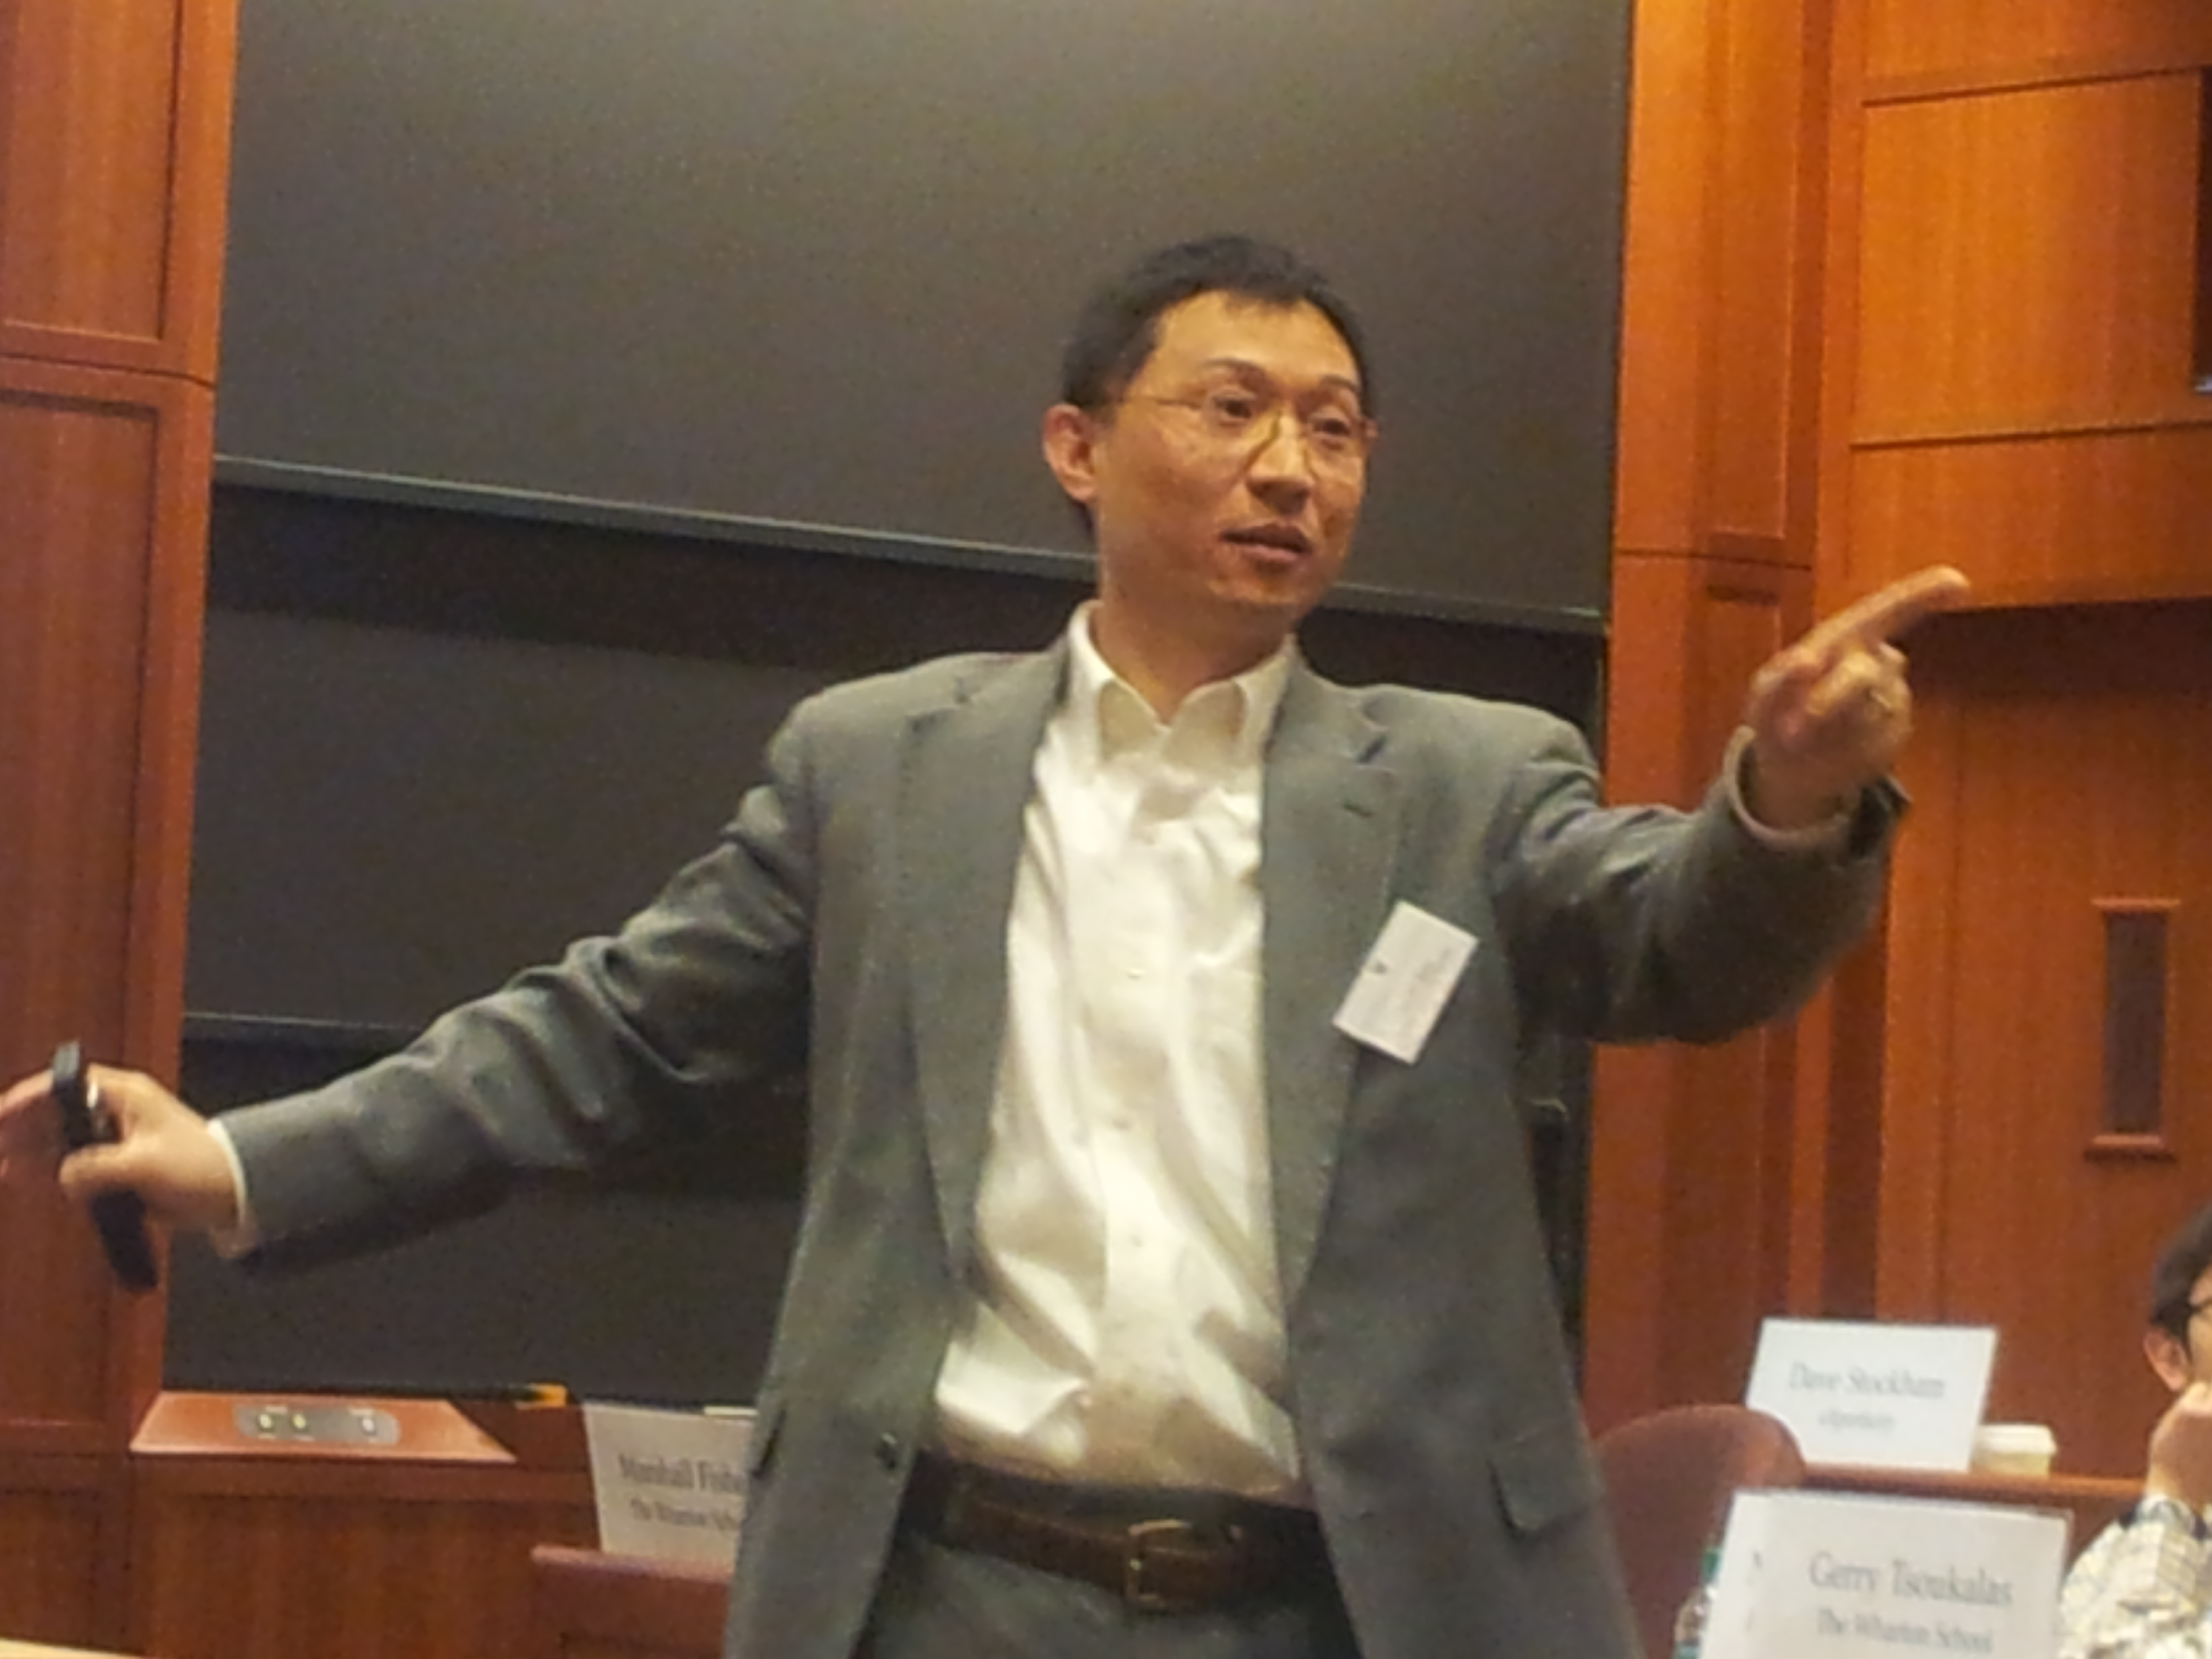 Professor Ren Speaking at Harvard Business School (May 2013)